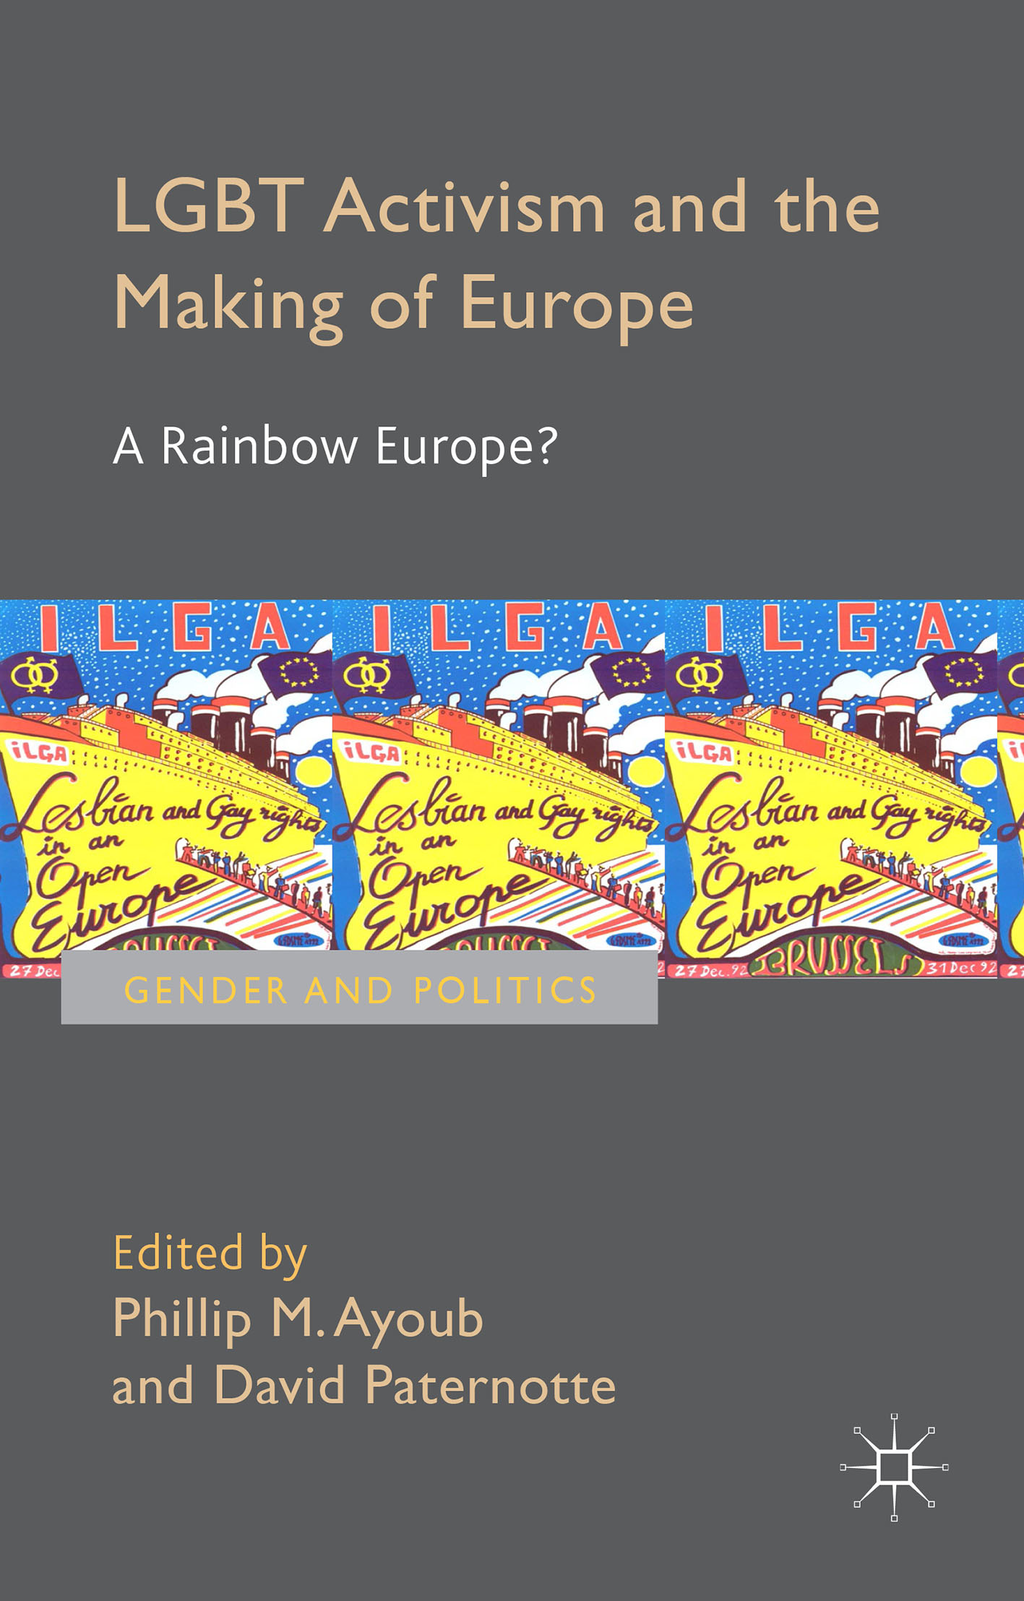 LGBT Activism and the Making of Europe A Rainbow Europe?